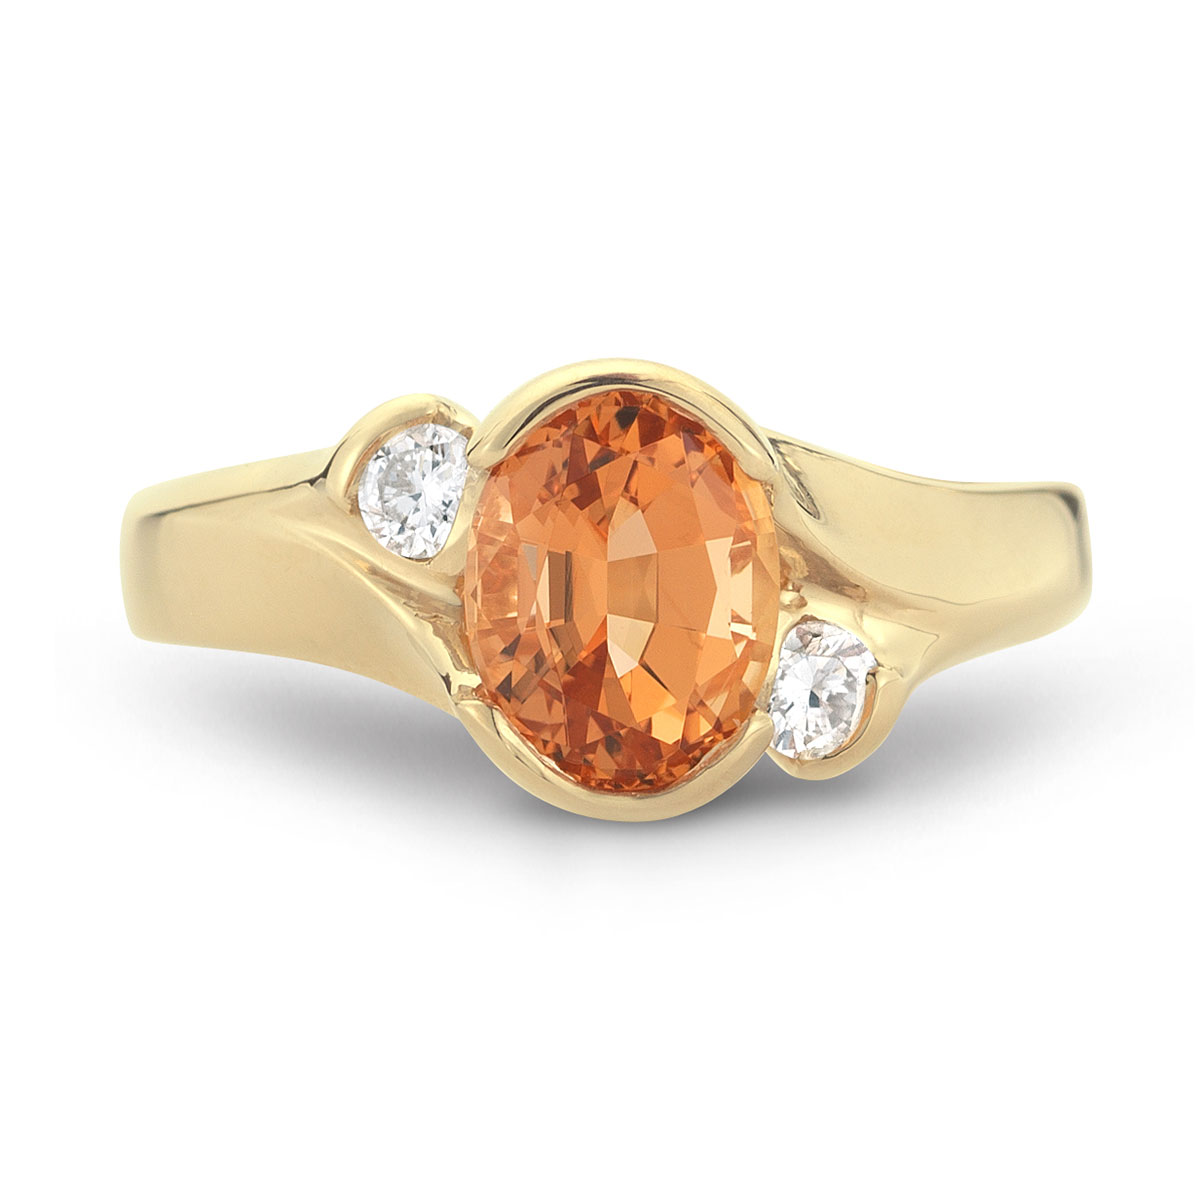 WR0186 Oval Gemstone Ring